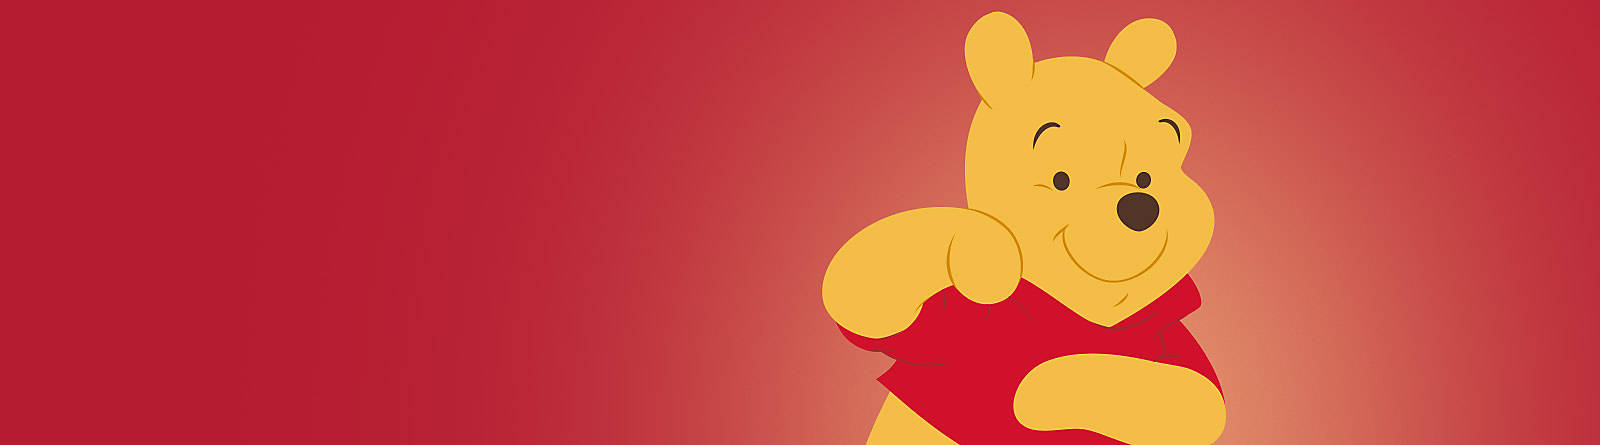 Winnie the Pooh Take a trip to 100 Acre Wood with our range of Winnie the Pooh soft toys, gifts and collectibles